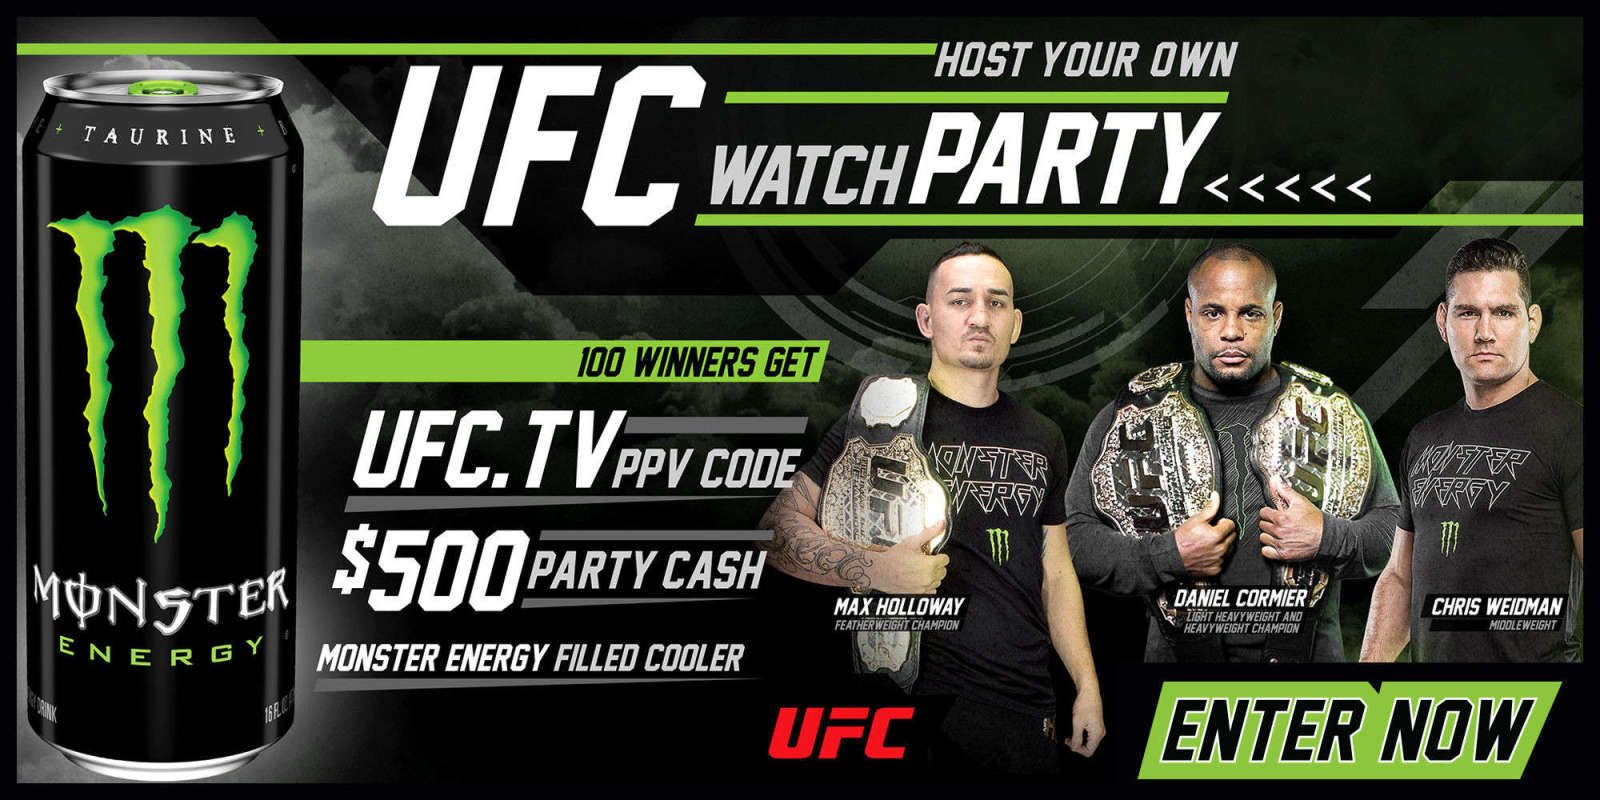 Host your own ufc watch party with monster energy